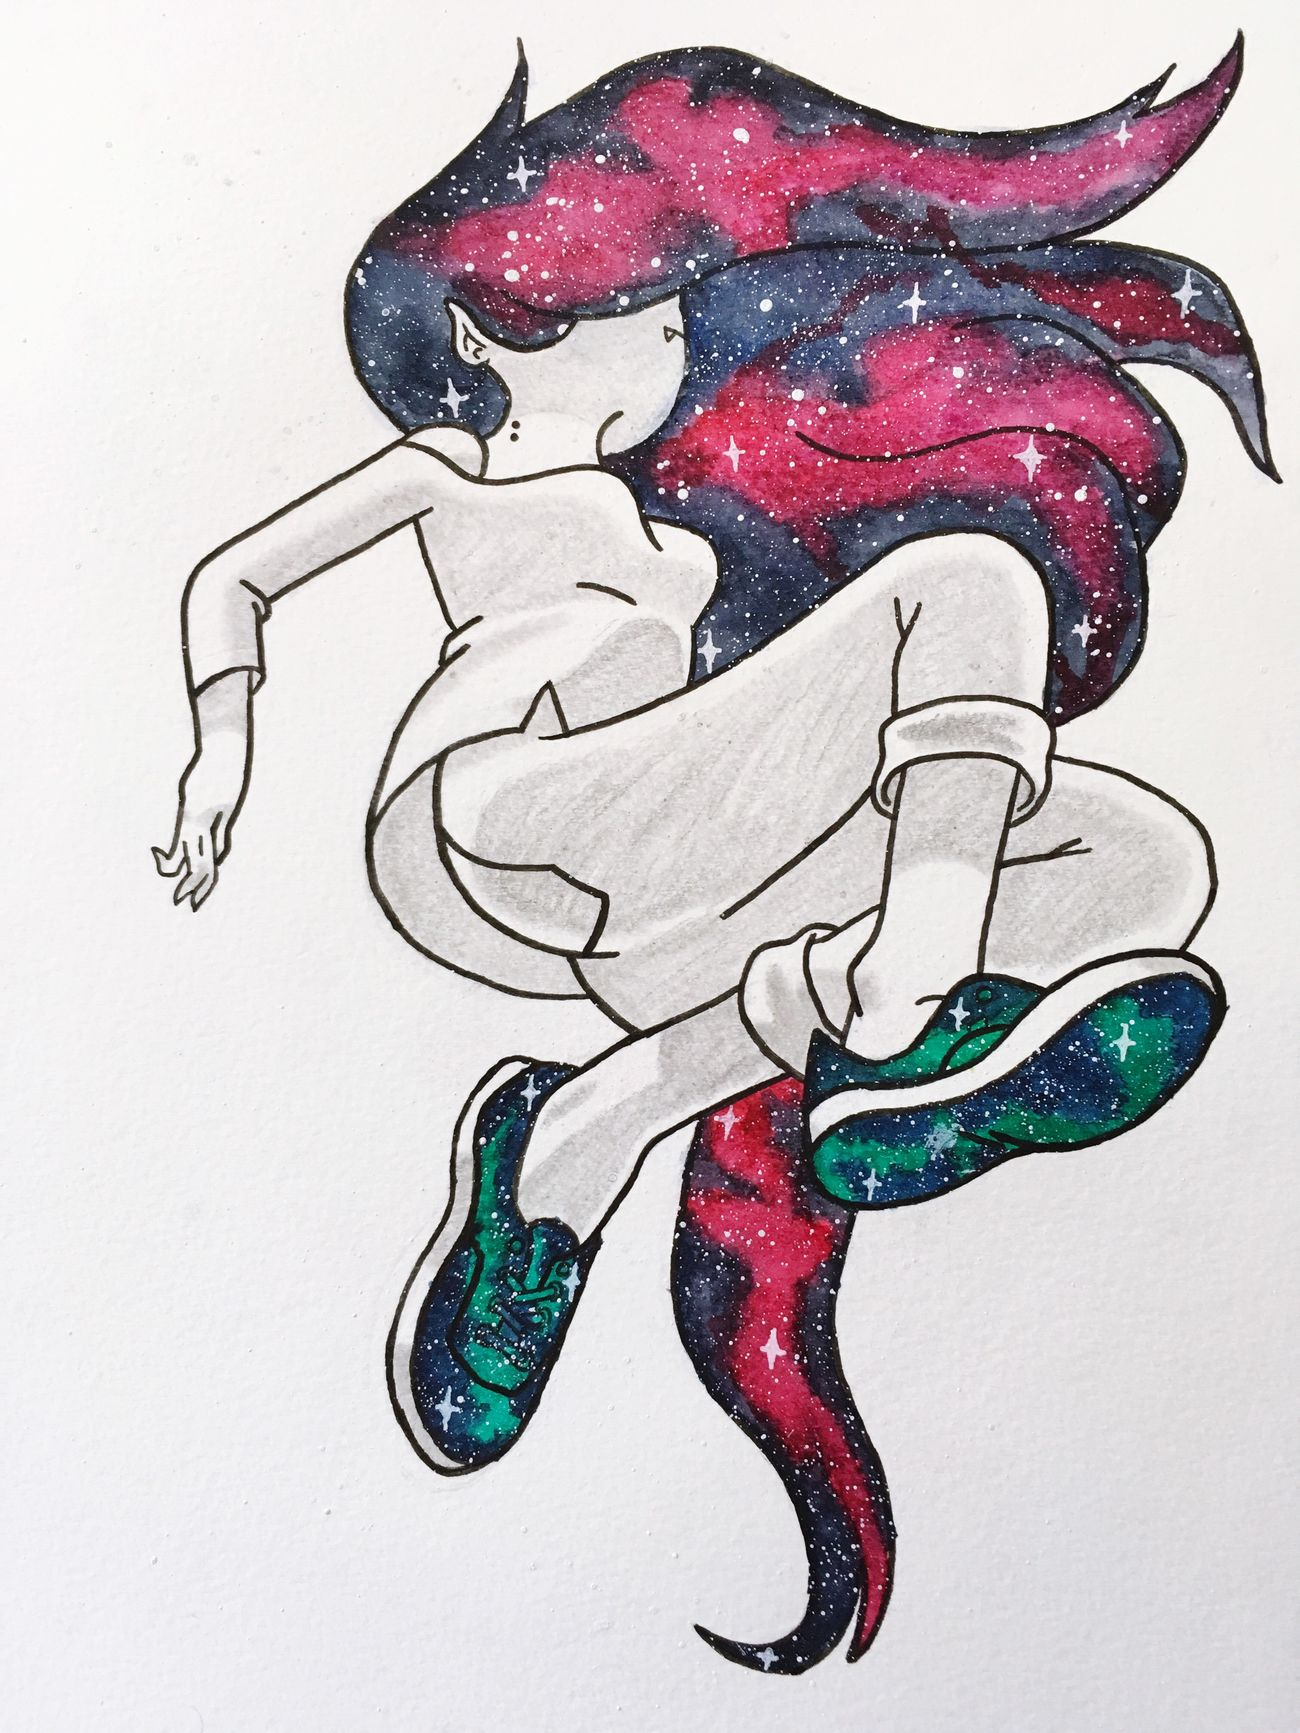 My Drawing Drawing Dessin Dessin Drawing Aquarell Aquarelle Adventure Time Marceline